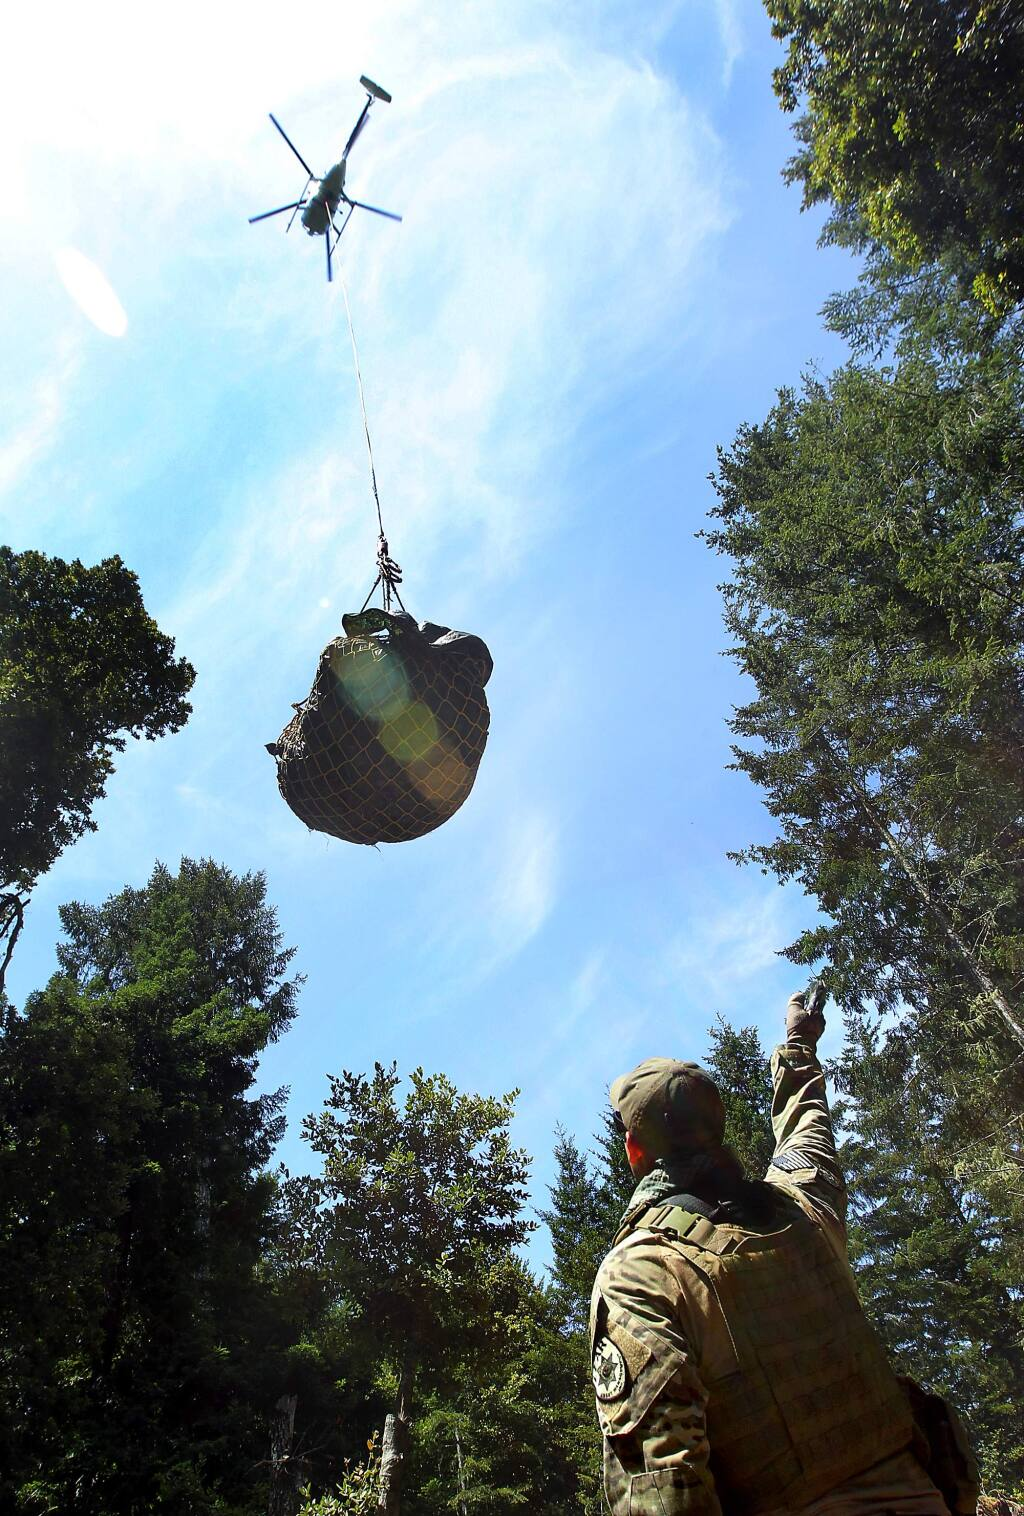 A member of the Lear Asset Management, who refused to give names in fear of retaliation, signals a helicopter leaving with a load of trash taken from a marijuana grow site in the Mendocino Redwood Co. land south of the town of Elk on Saturday, July 19, 2014. (JOHN BURGESS/ PD)